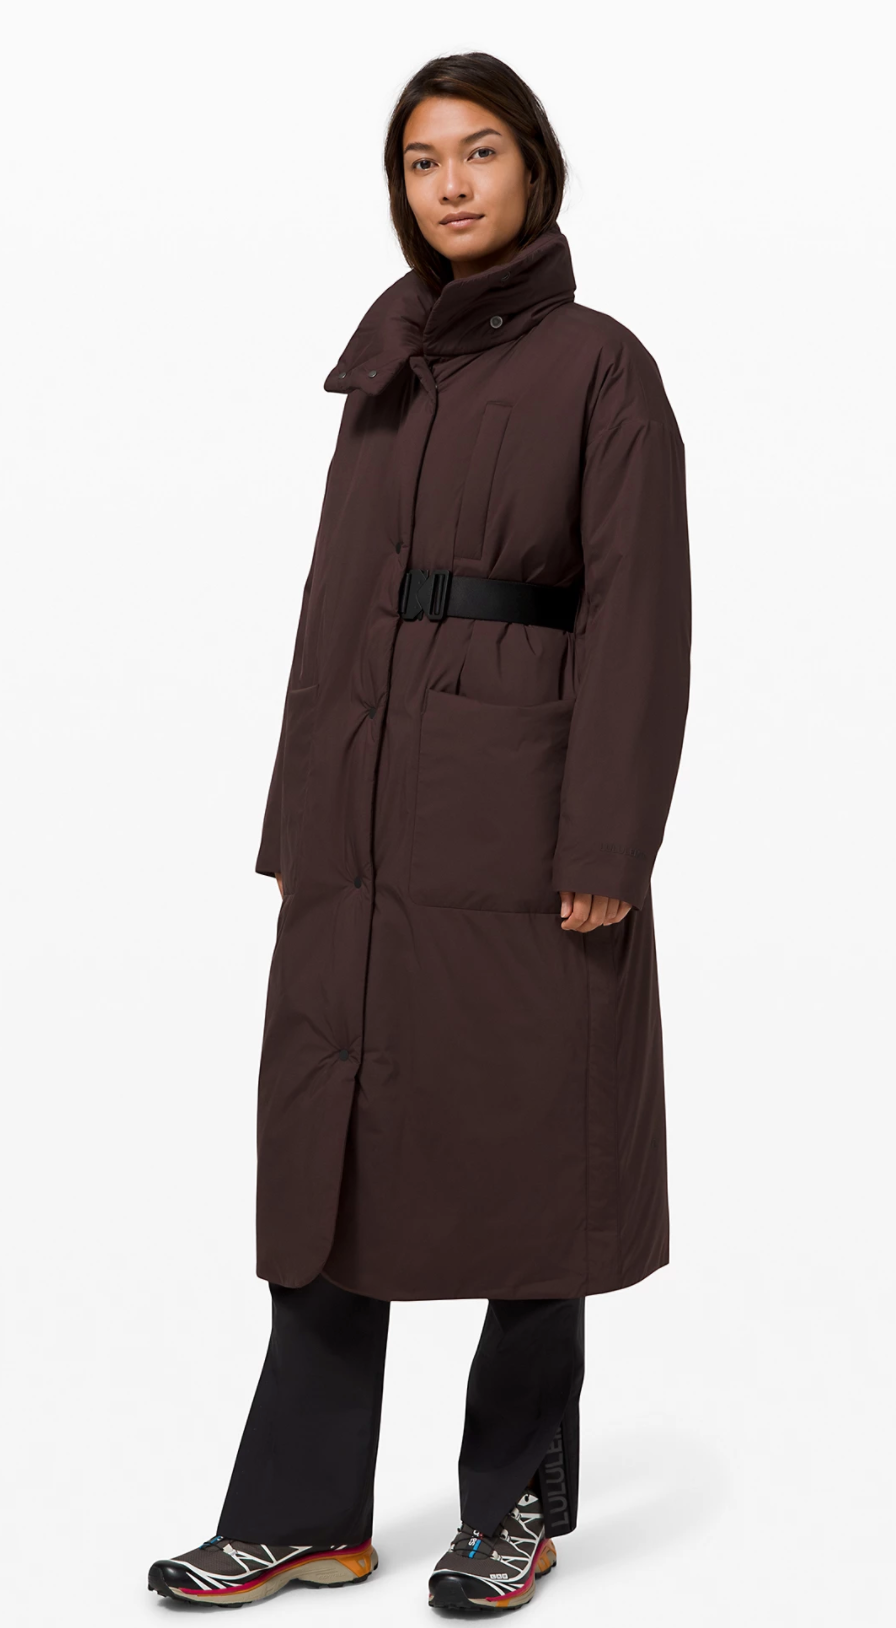 Pure Puff Jacket Long in French Press (Photo via Lululemon Athletica)